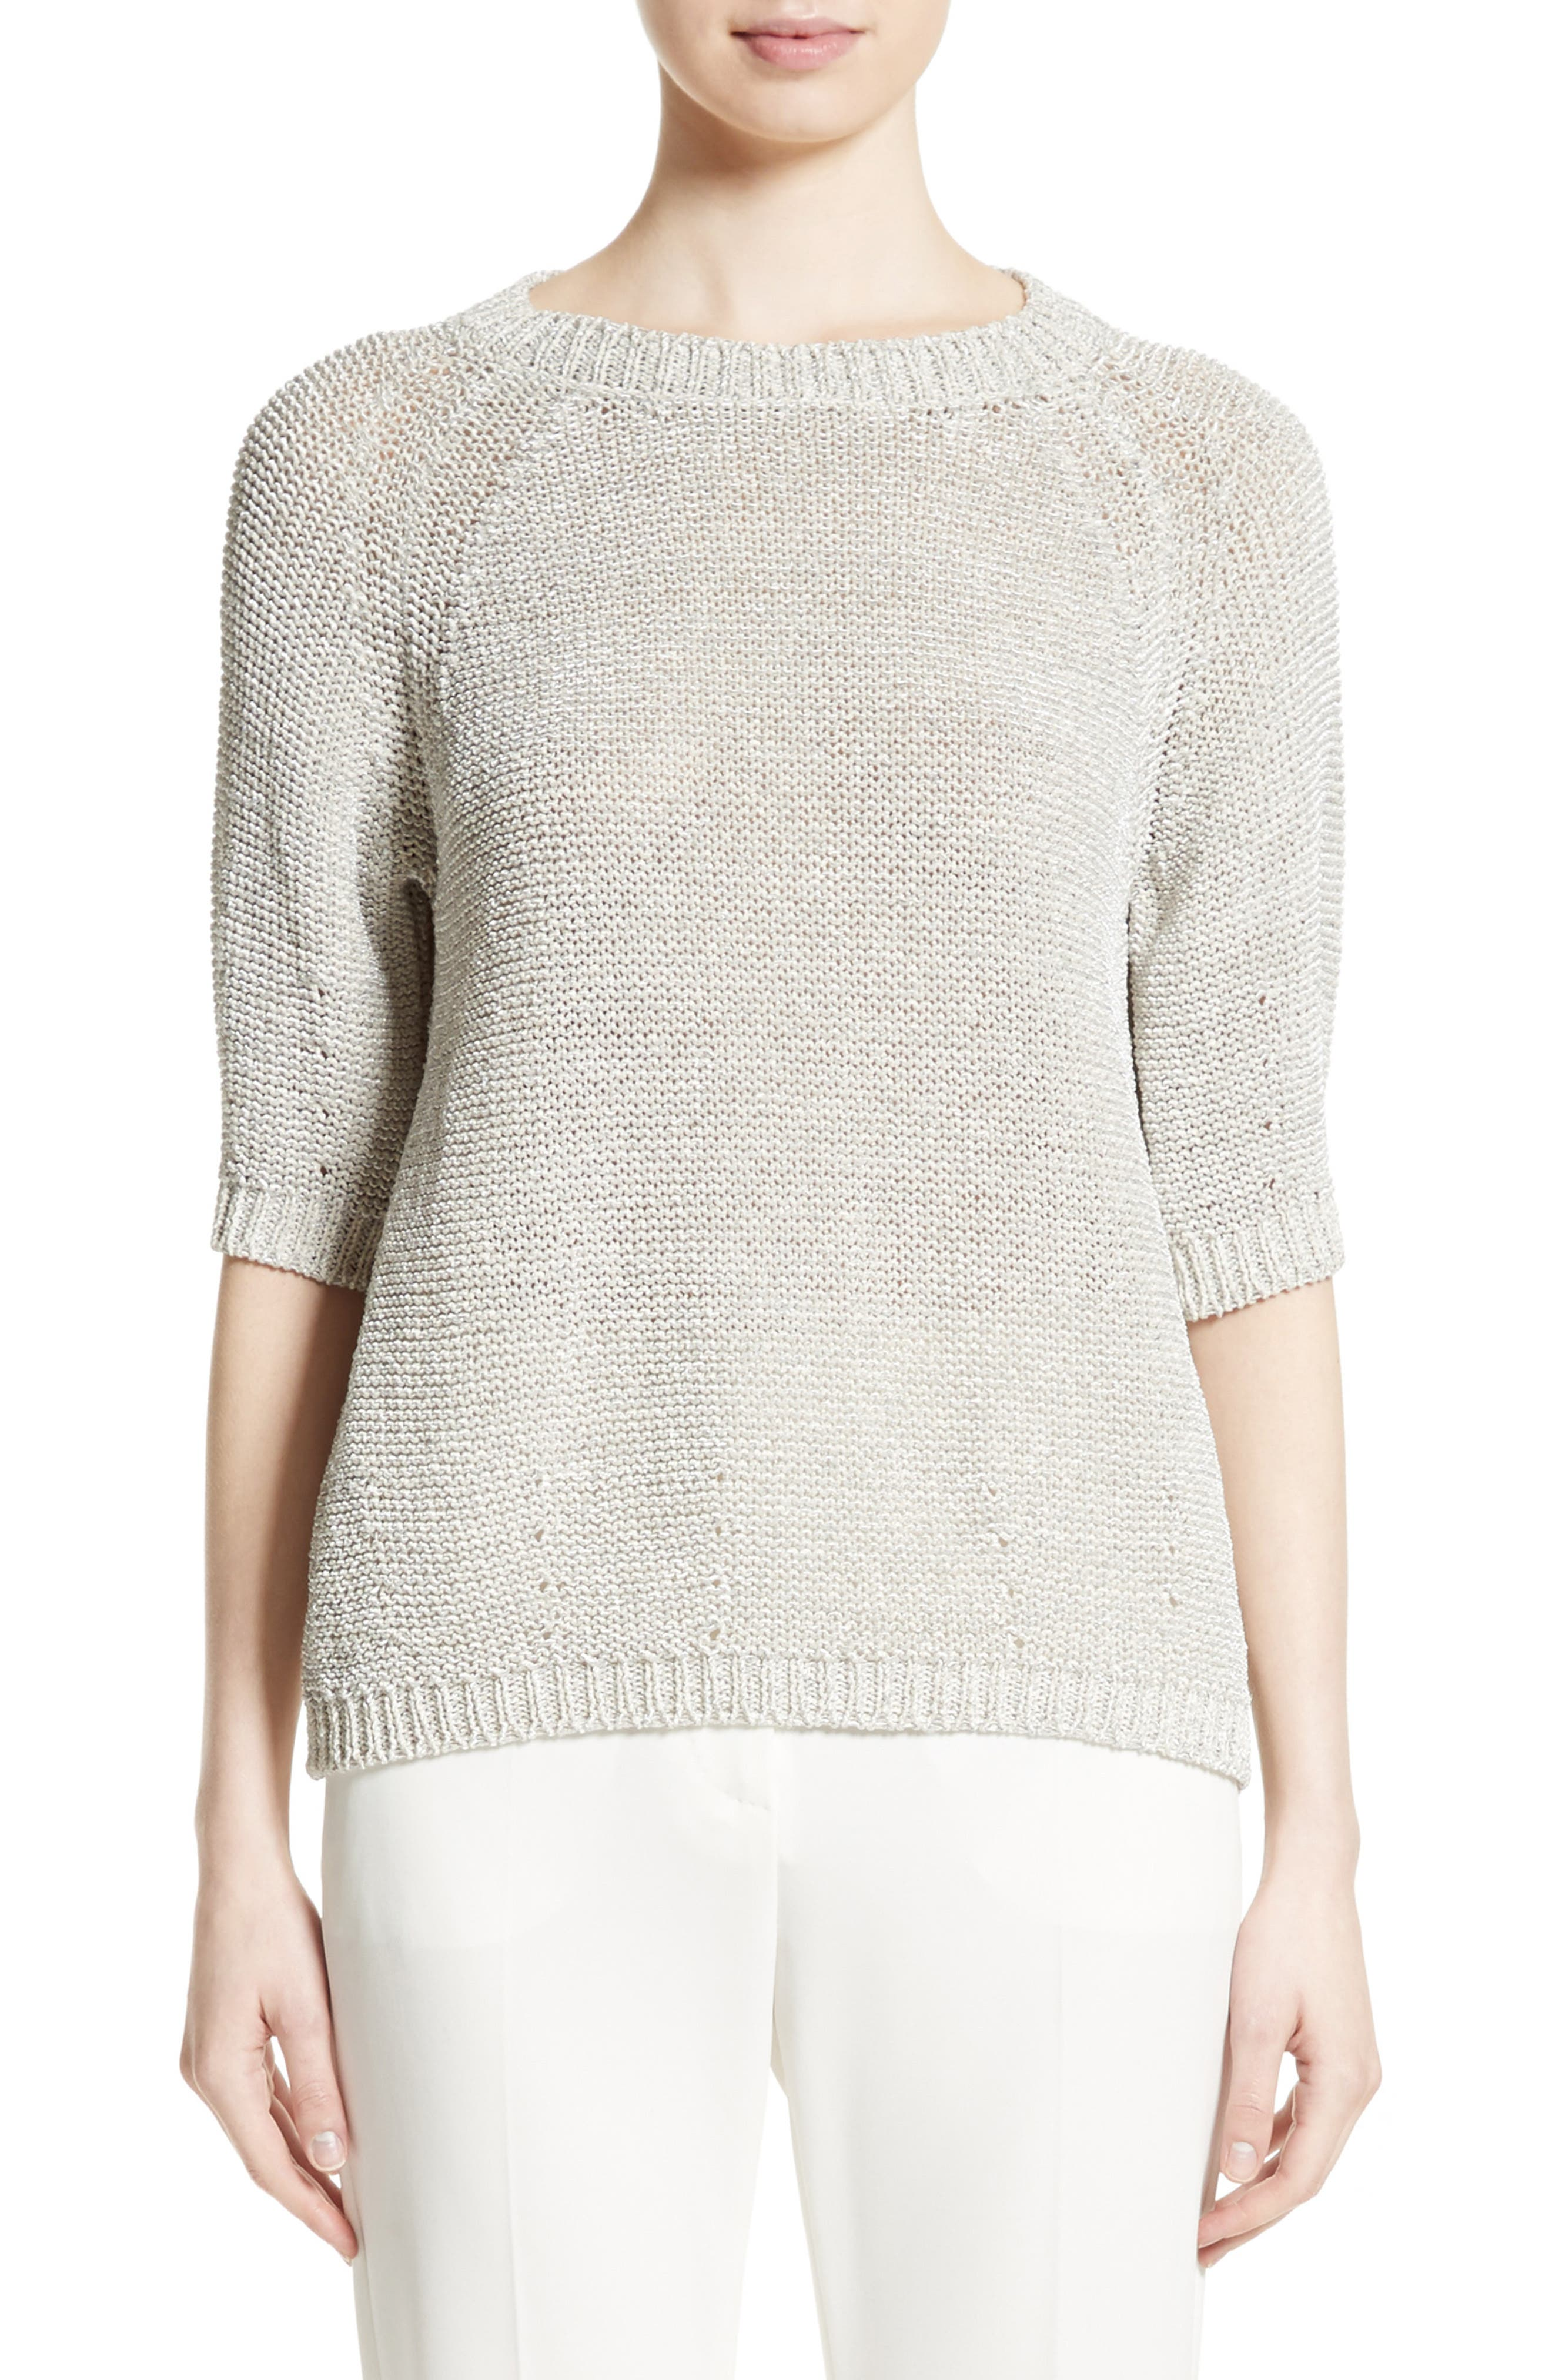 Cotton Blend Sweater,                         Main,                         color, White